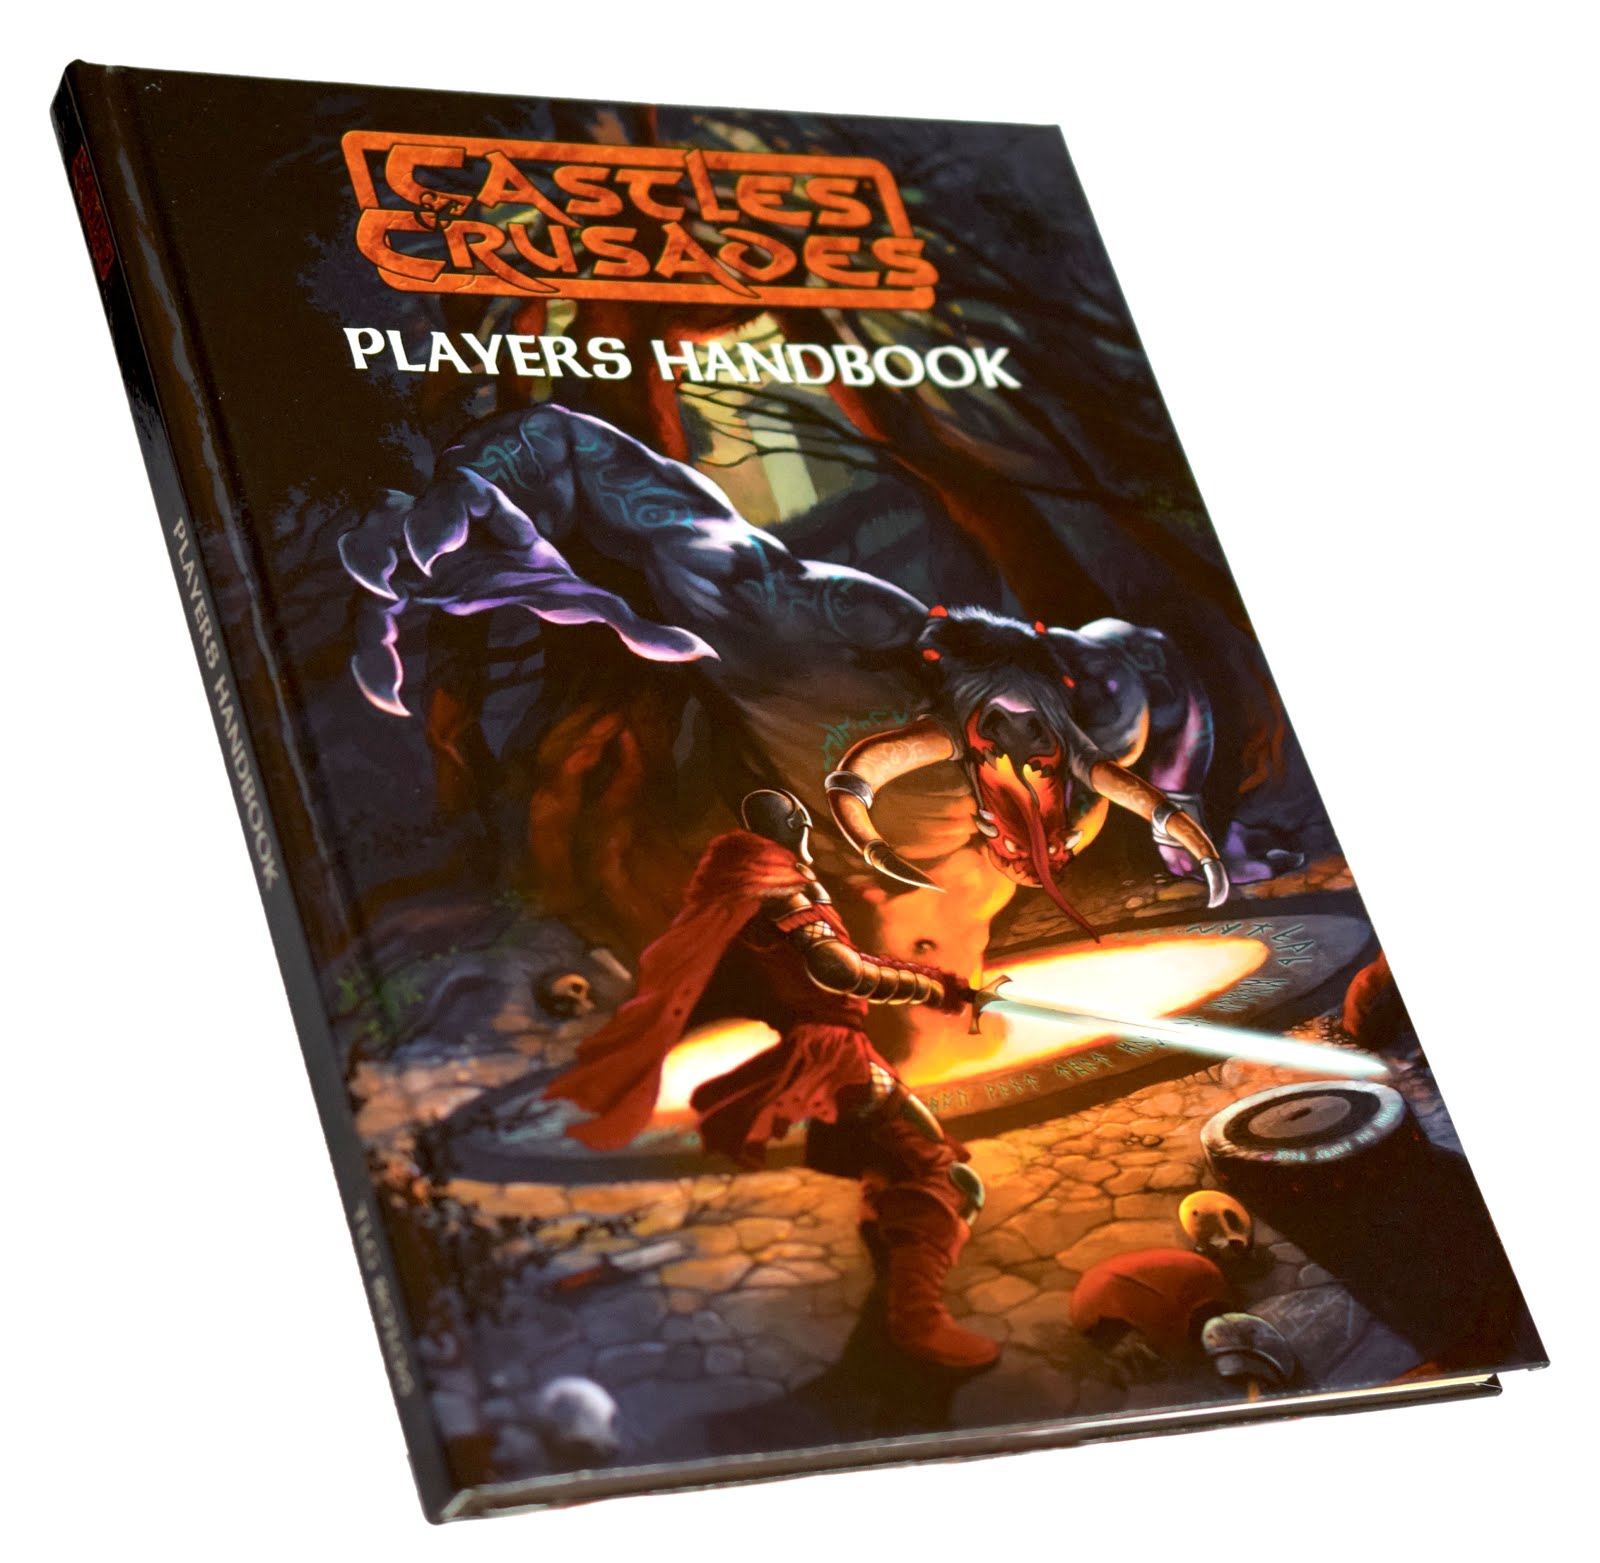 Players Handbook